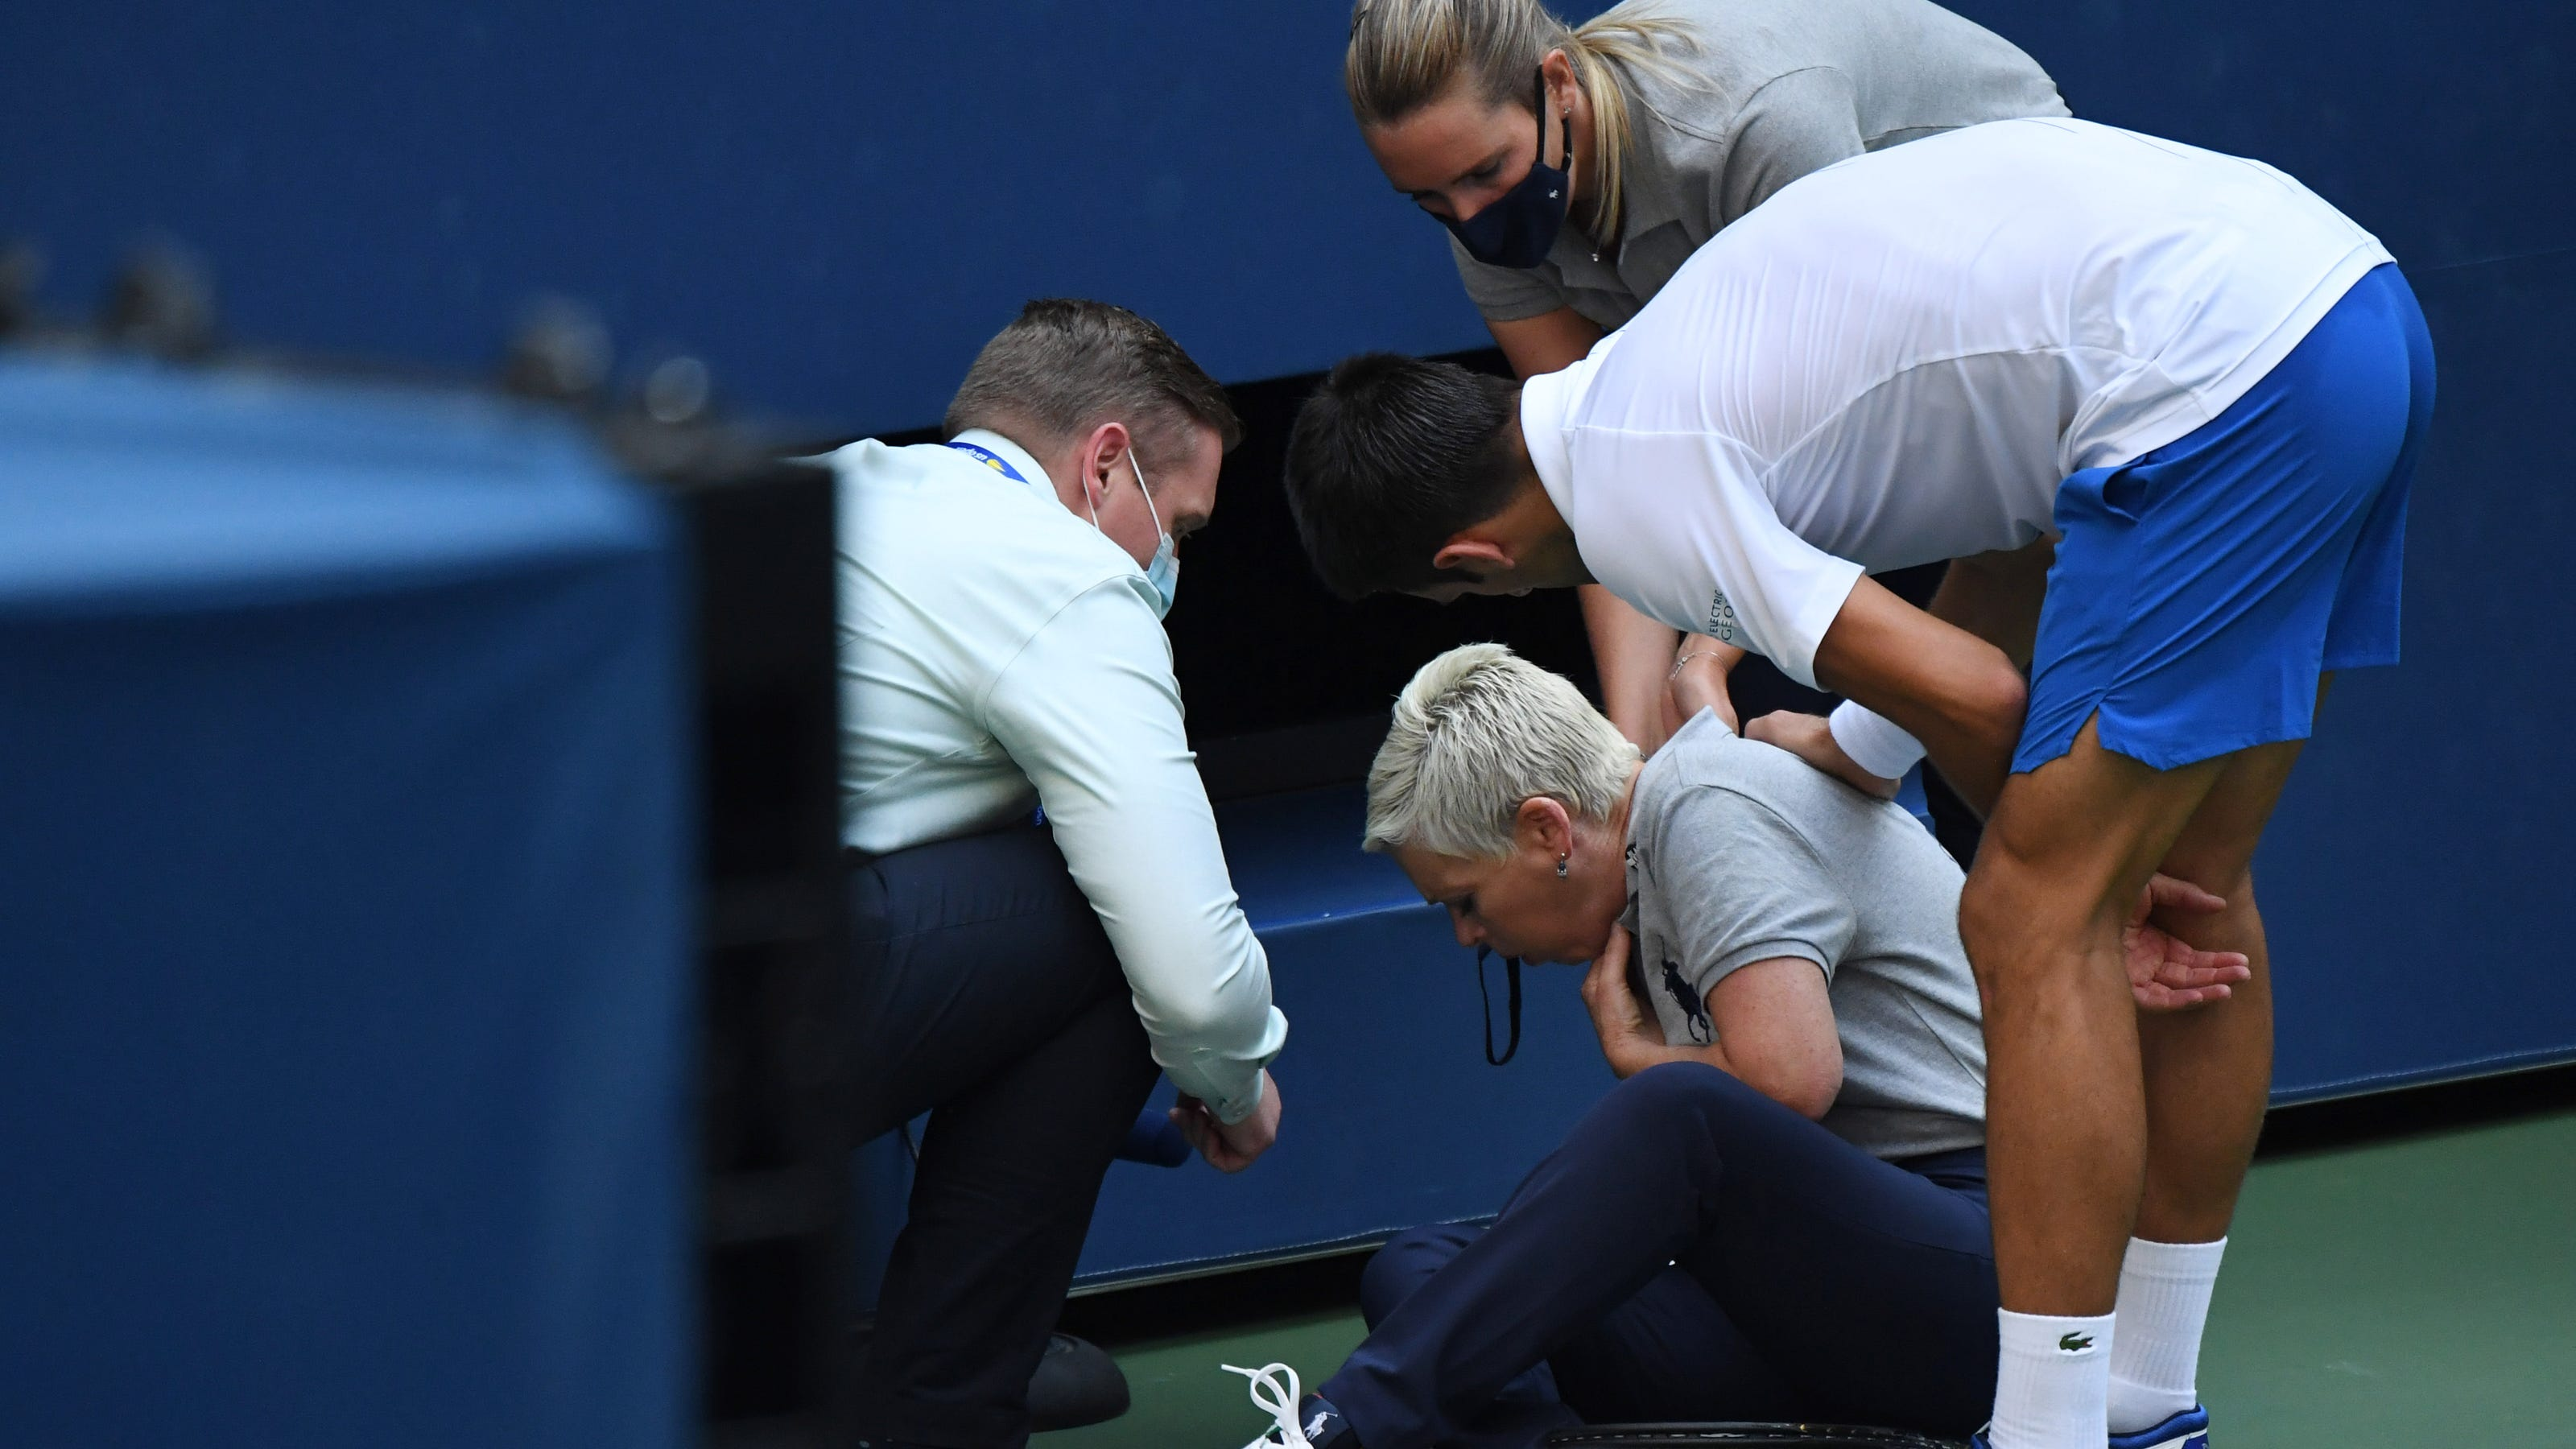 Us Open Novak Djokovic Defaulted After Hitting Lineswoman With Ball